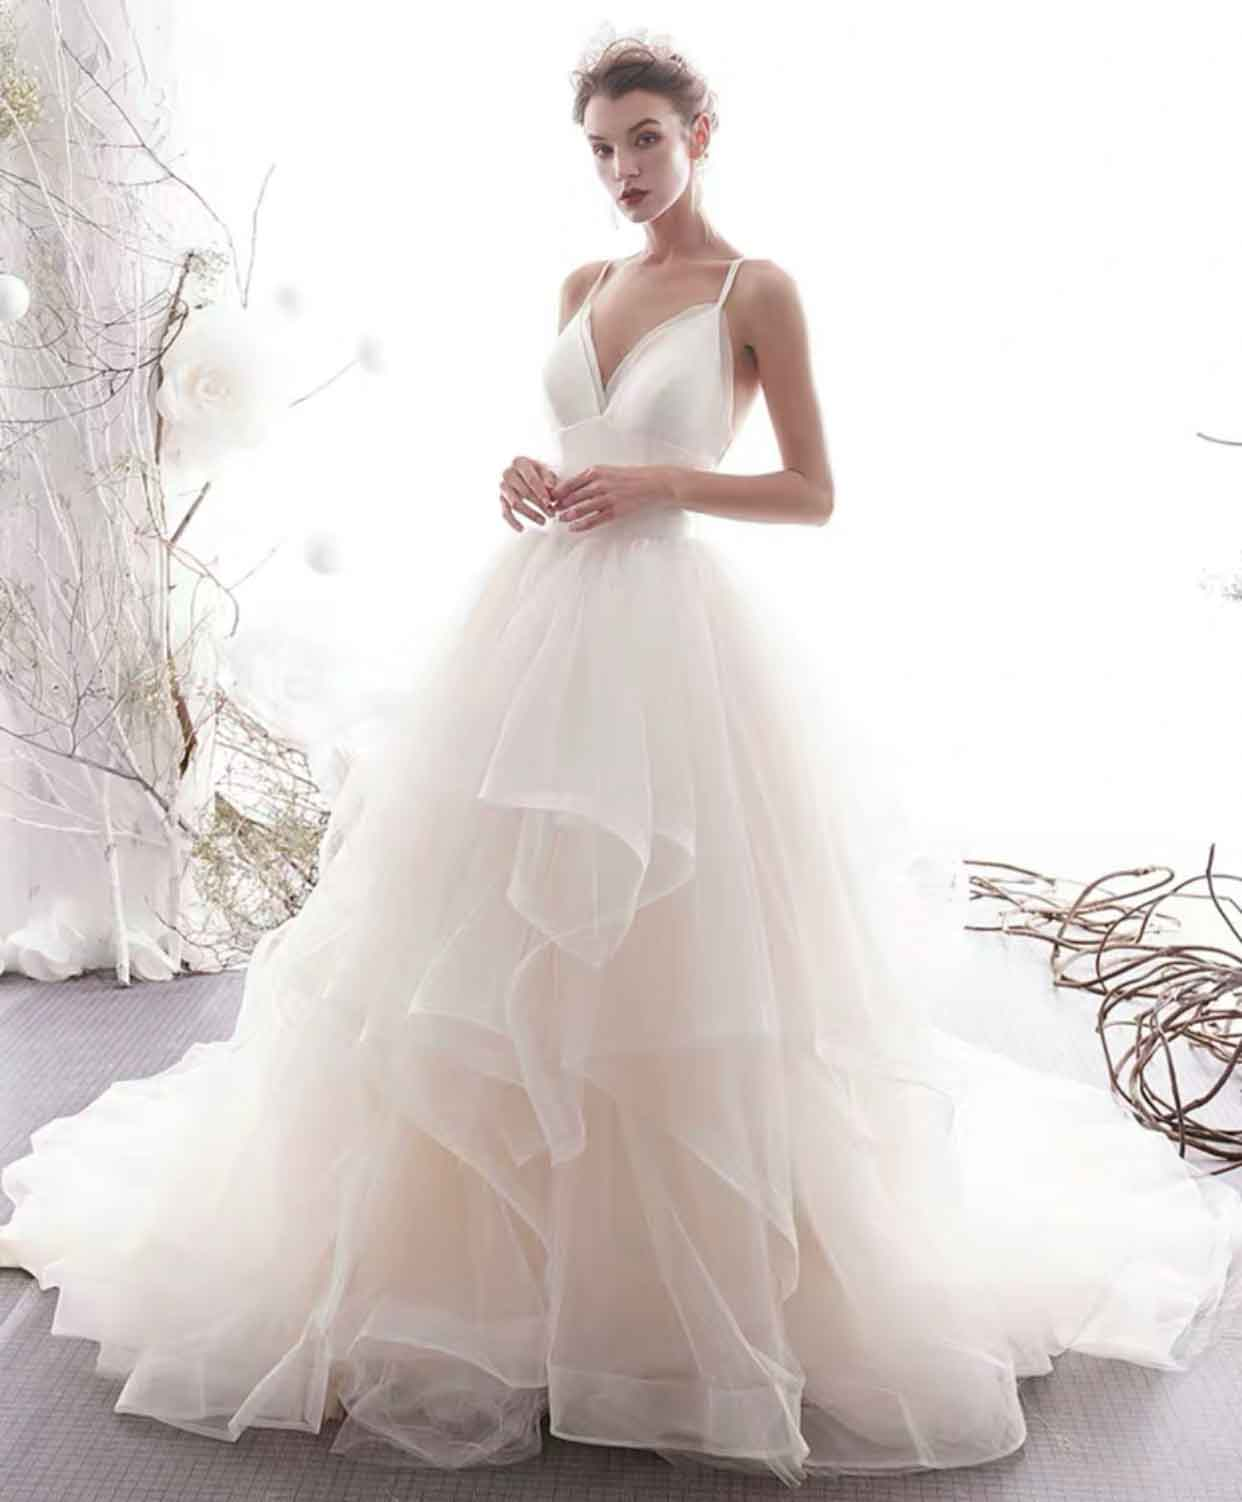 [RENT OR BUY] Custom Made Long Train Organza Layered Ruffled Skirt Wedding Dress with Criss Cross Ba